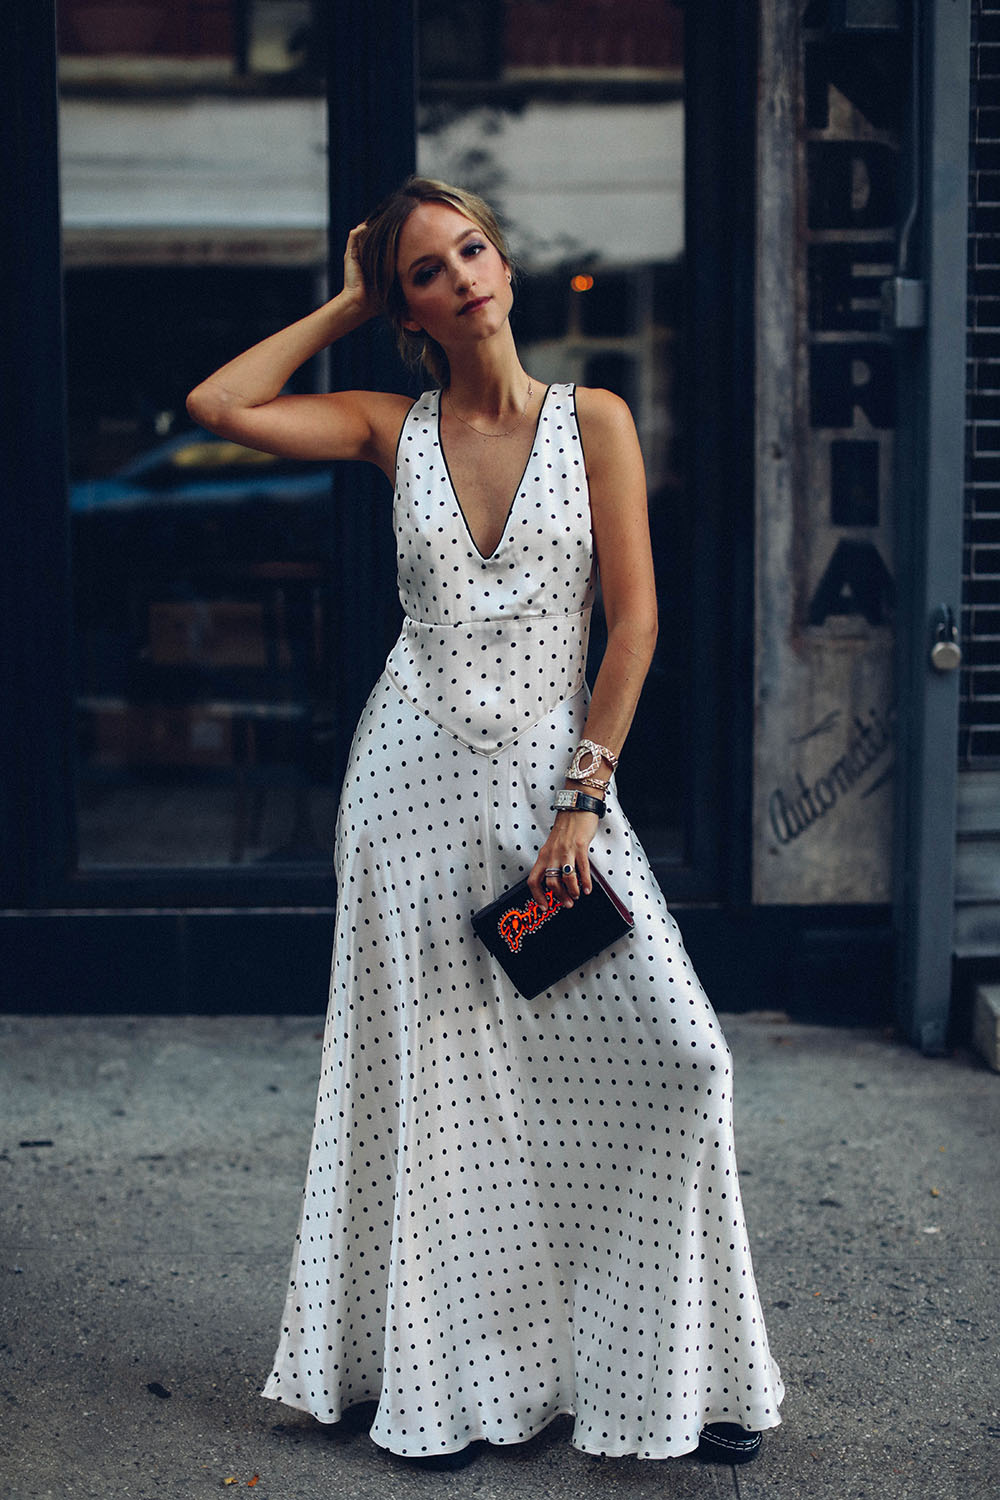 Summer-white and the Ganni polka-dot dress by Charlotte Groeneveld Thefashionguitar